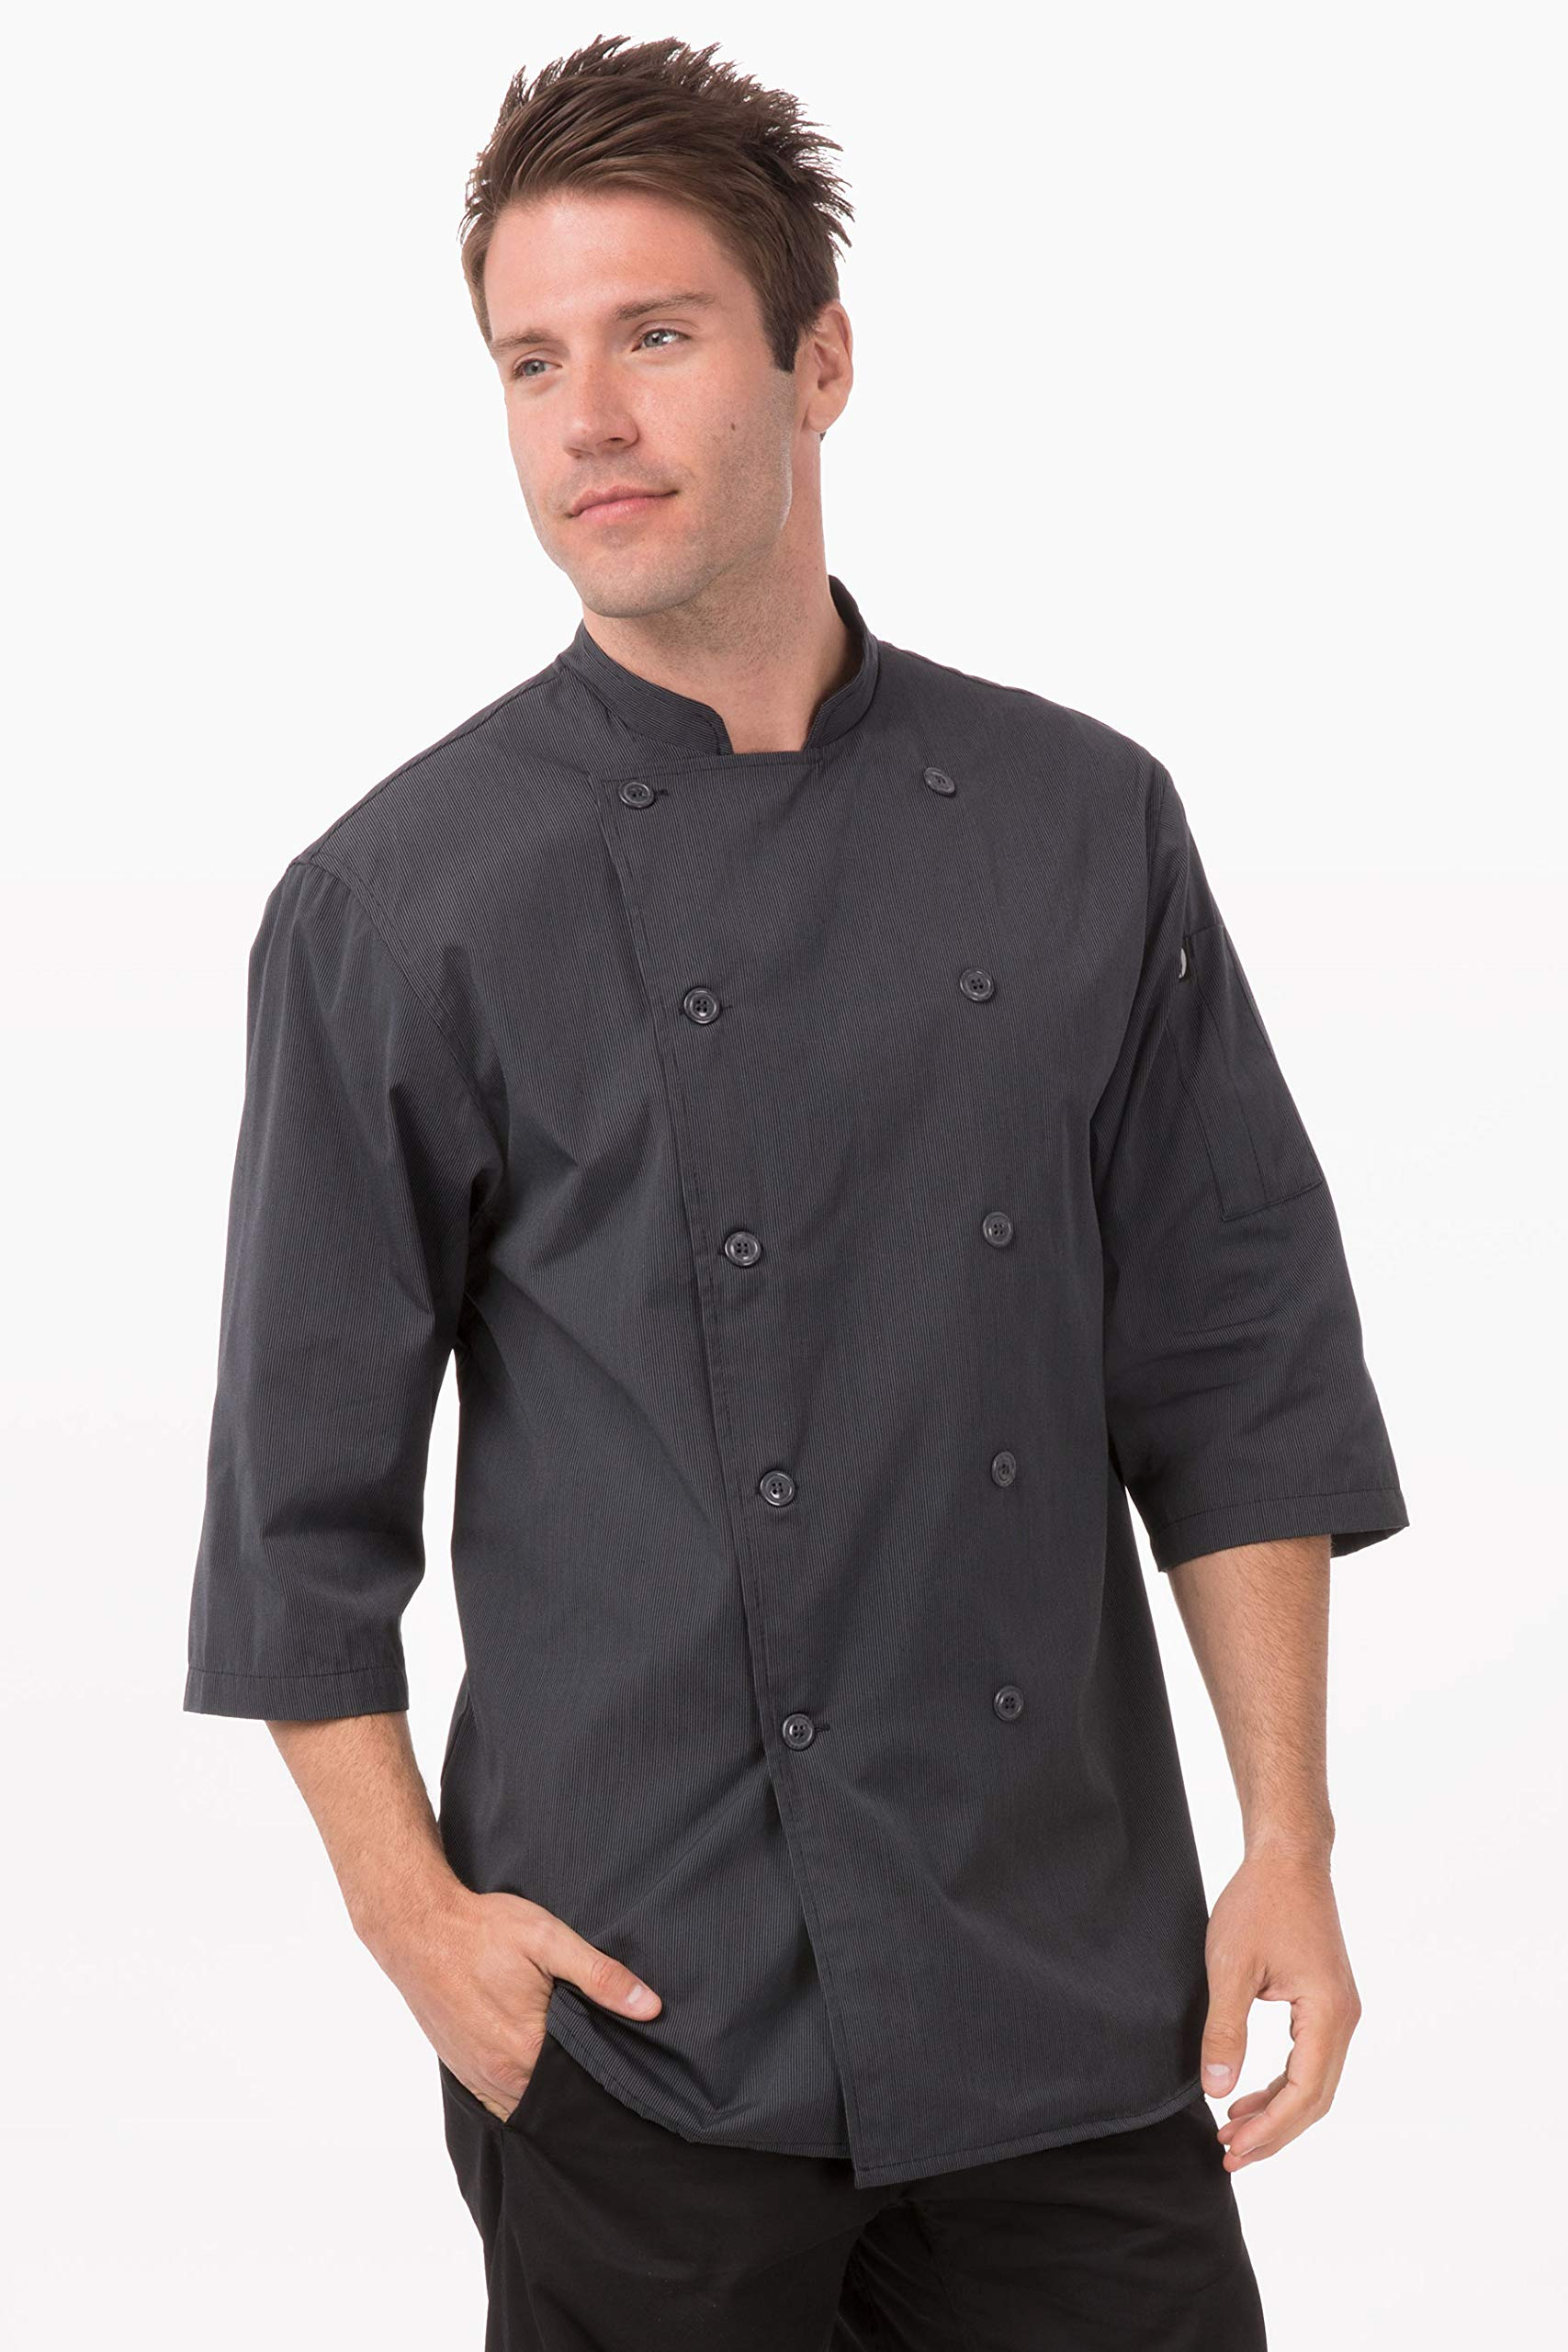 Chef Works Men's Brighton Chef Coat, Deep Grey, Large by Chef Works